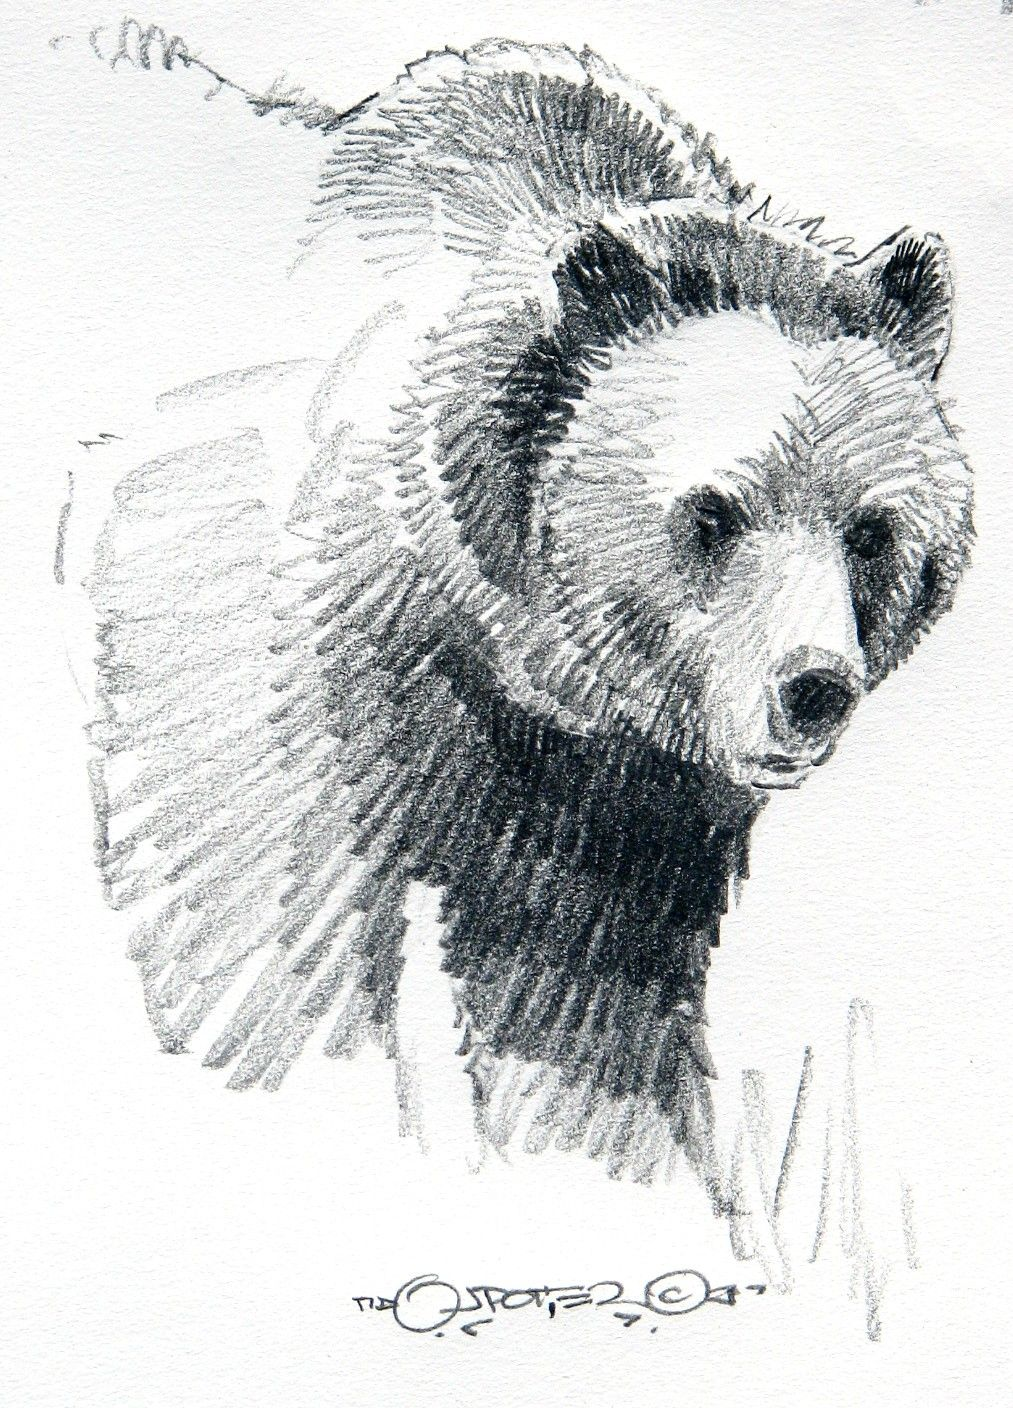 drawings of grizzly bears | drawings I like | Pinterest ...  drawings of gri...